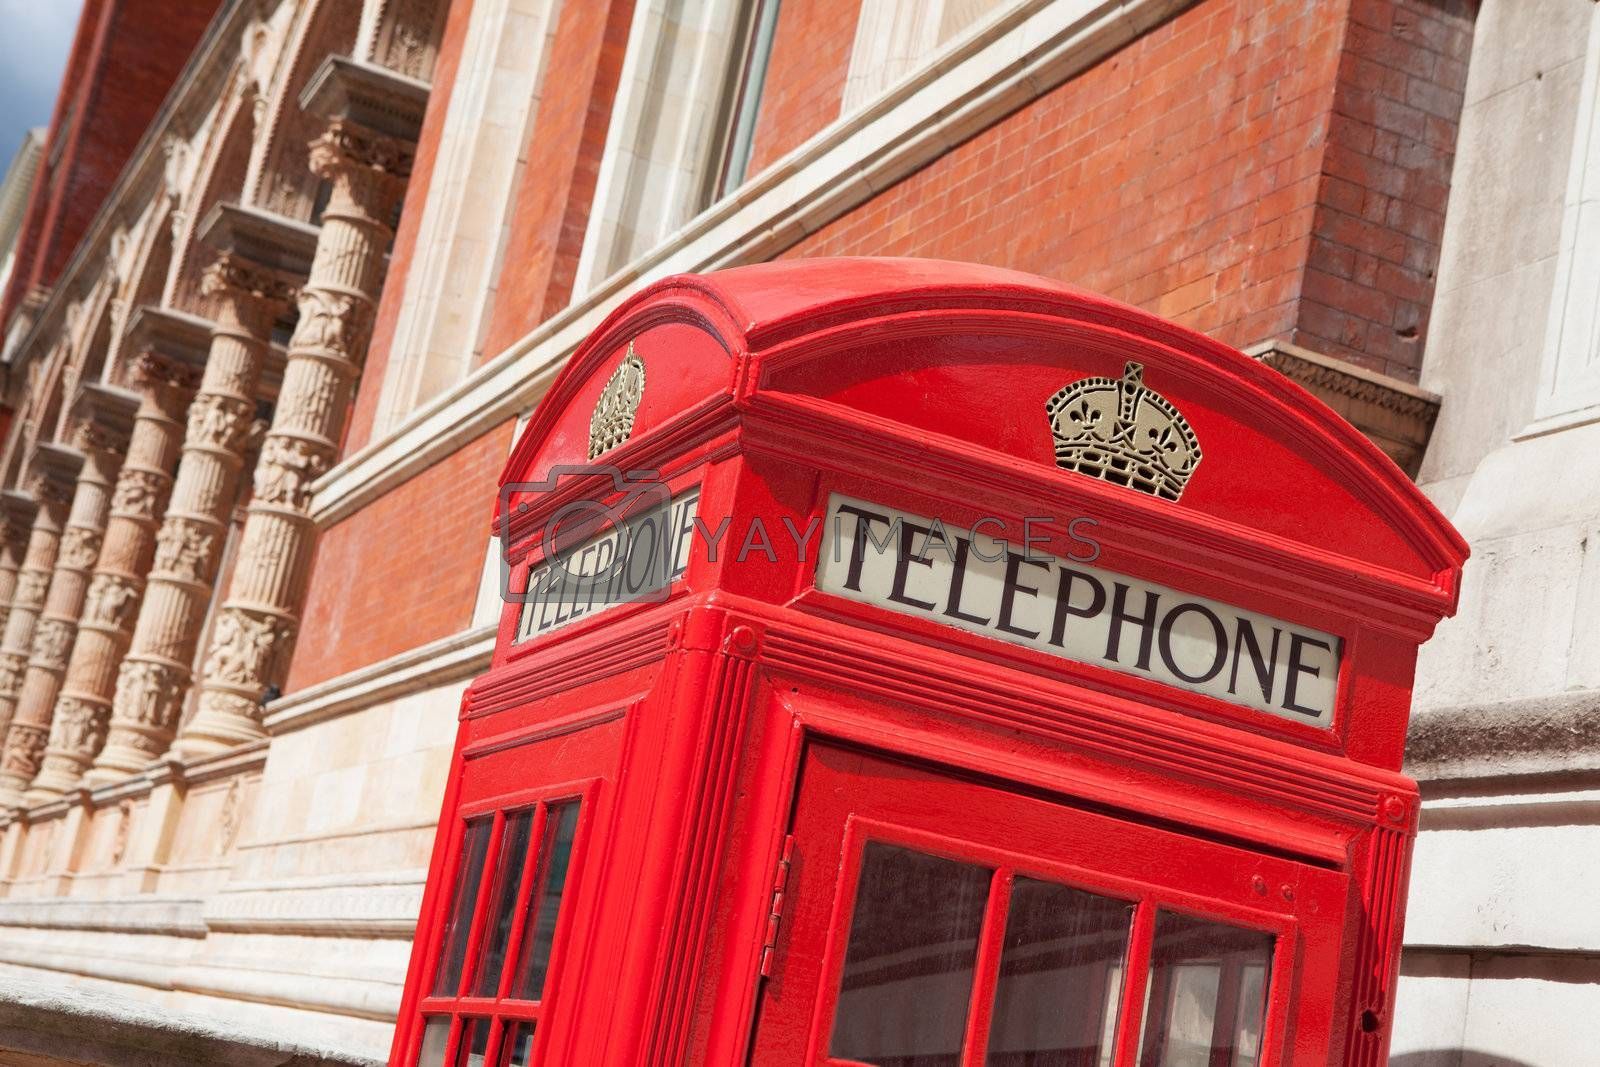 Traditional London symbol red public phone box on building facade background, Great Britain